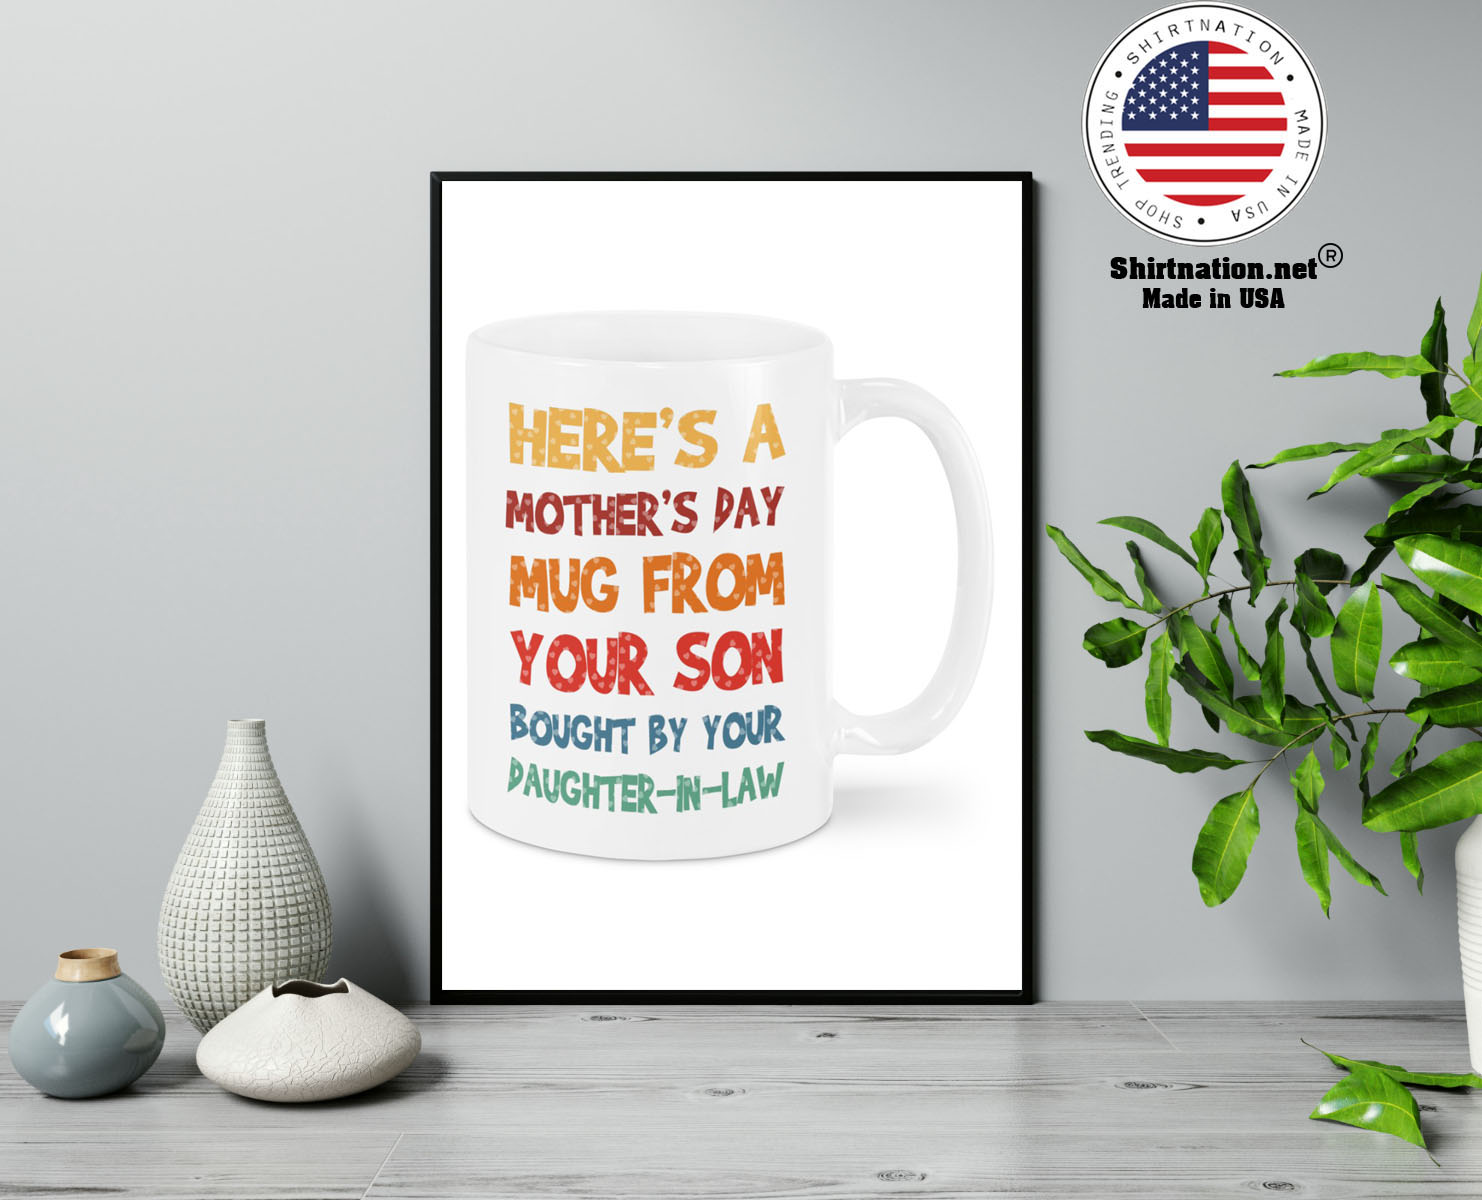 Heres a mothers day mug from your son mug 13